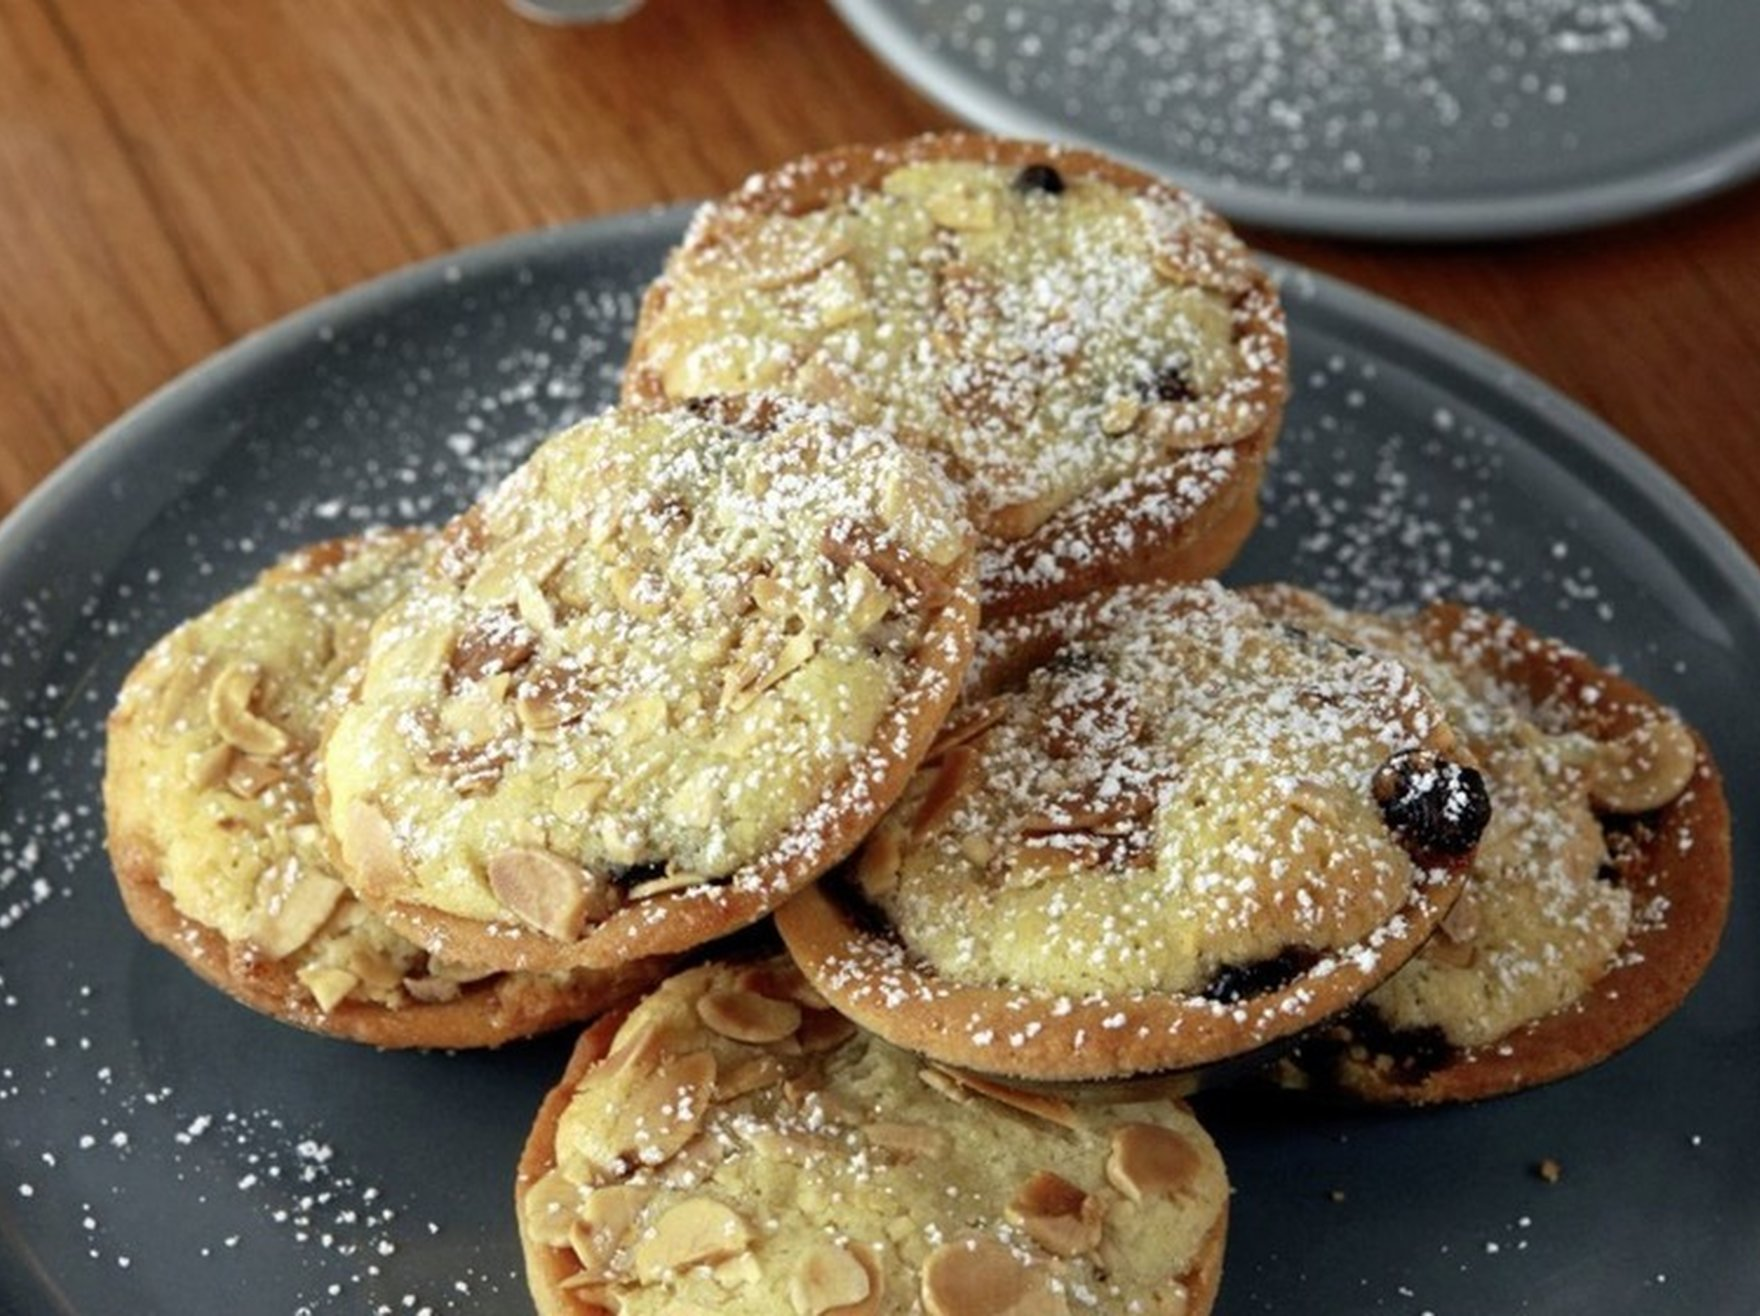 James Street Cookery School: Frangipane mince pies, individual Christmas puddings